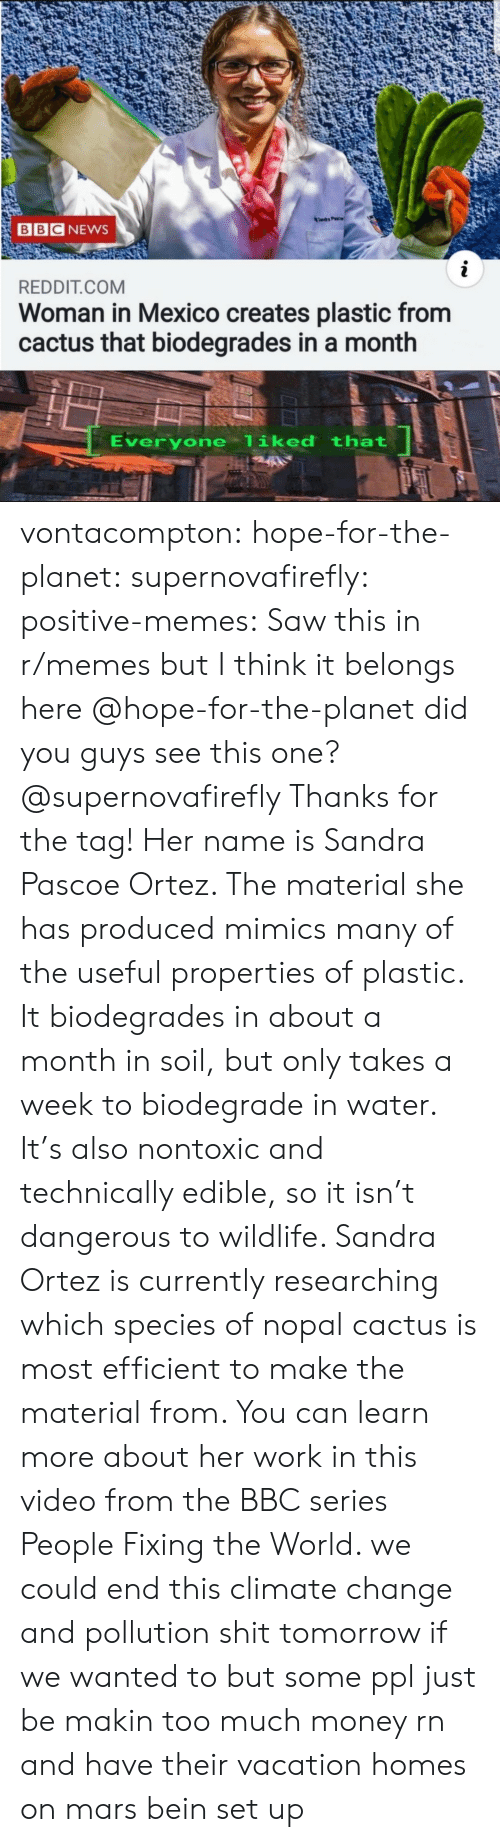 Juice, Memes, and Money: Tandr Pac  BBC NEWS  i  REDDIT.COM  Woman in Mexico creates plastic from  cactus that biodegrades in a month  Everyone liked that vontacompton:  hope-for-the-planet:  supernovafirefly:  positive-memes: Saw this in r/memes but I think it belongs here @hope-for-the-planet did you guys see this one?  @supernovafirefly Thanks for the tag! Her name is Sandra Pascoe Ortez. The material she has produced mimics many of the useful properties of plastic. It biodegrades in about a month in soil, but only takes a week to biodegrade in water. It's also nontoxic and technically edible, so it isn't dangerous to wildlife.  Sandra Ortez is currently researching which species of nopal cactus is most efficient to make the material from. You can learn more about her work in this video from the BBC series People Fixing the World.   we could end this climate change and pollution shit tomorrow if we wanted to but some ppl just be makin too much money rn and have their vacation homes on mars bein set up